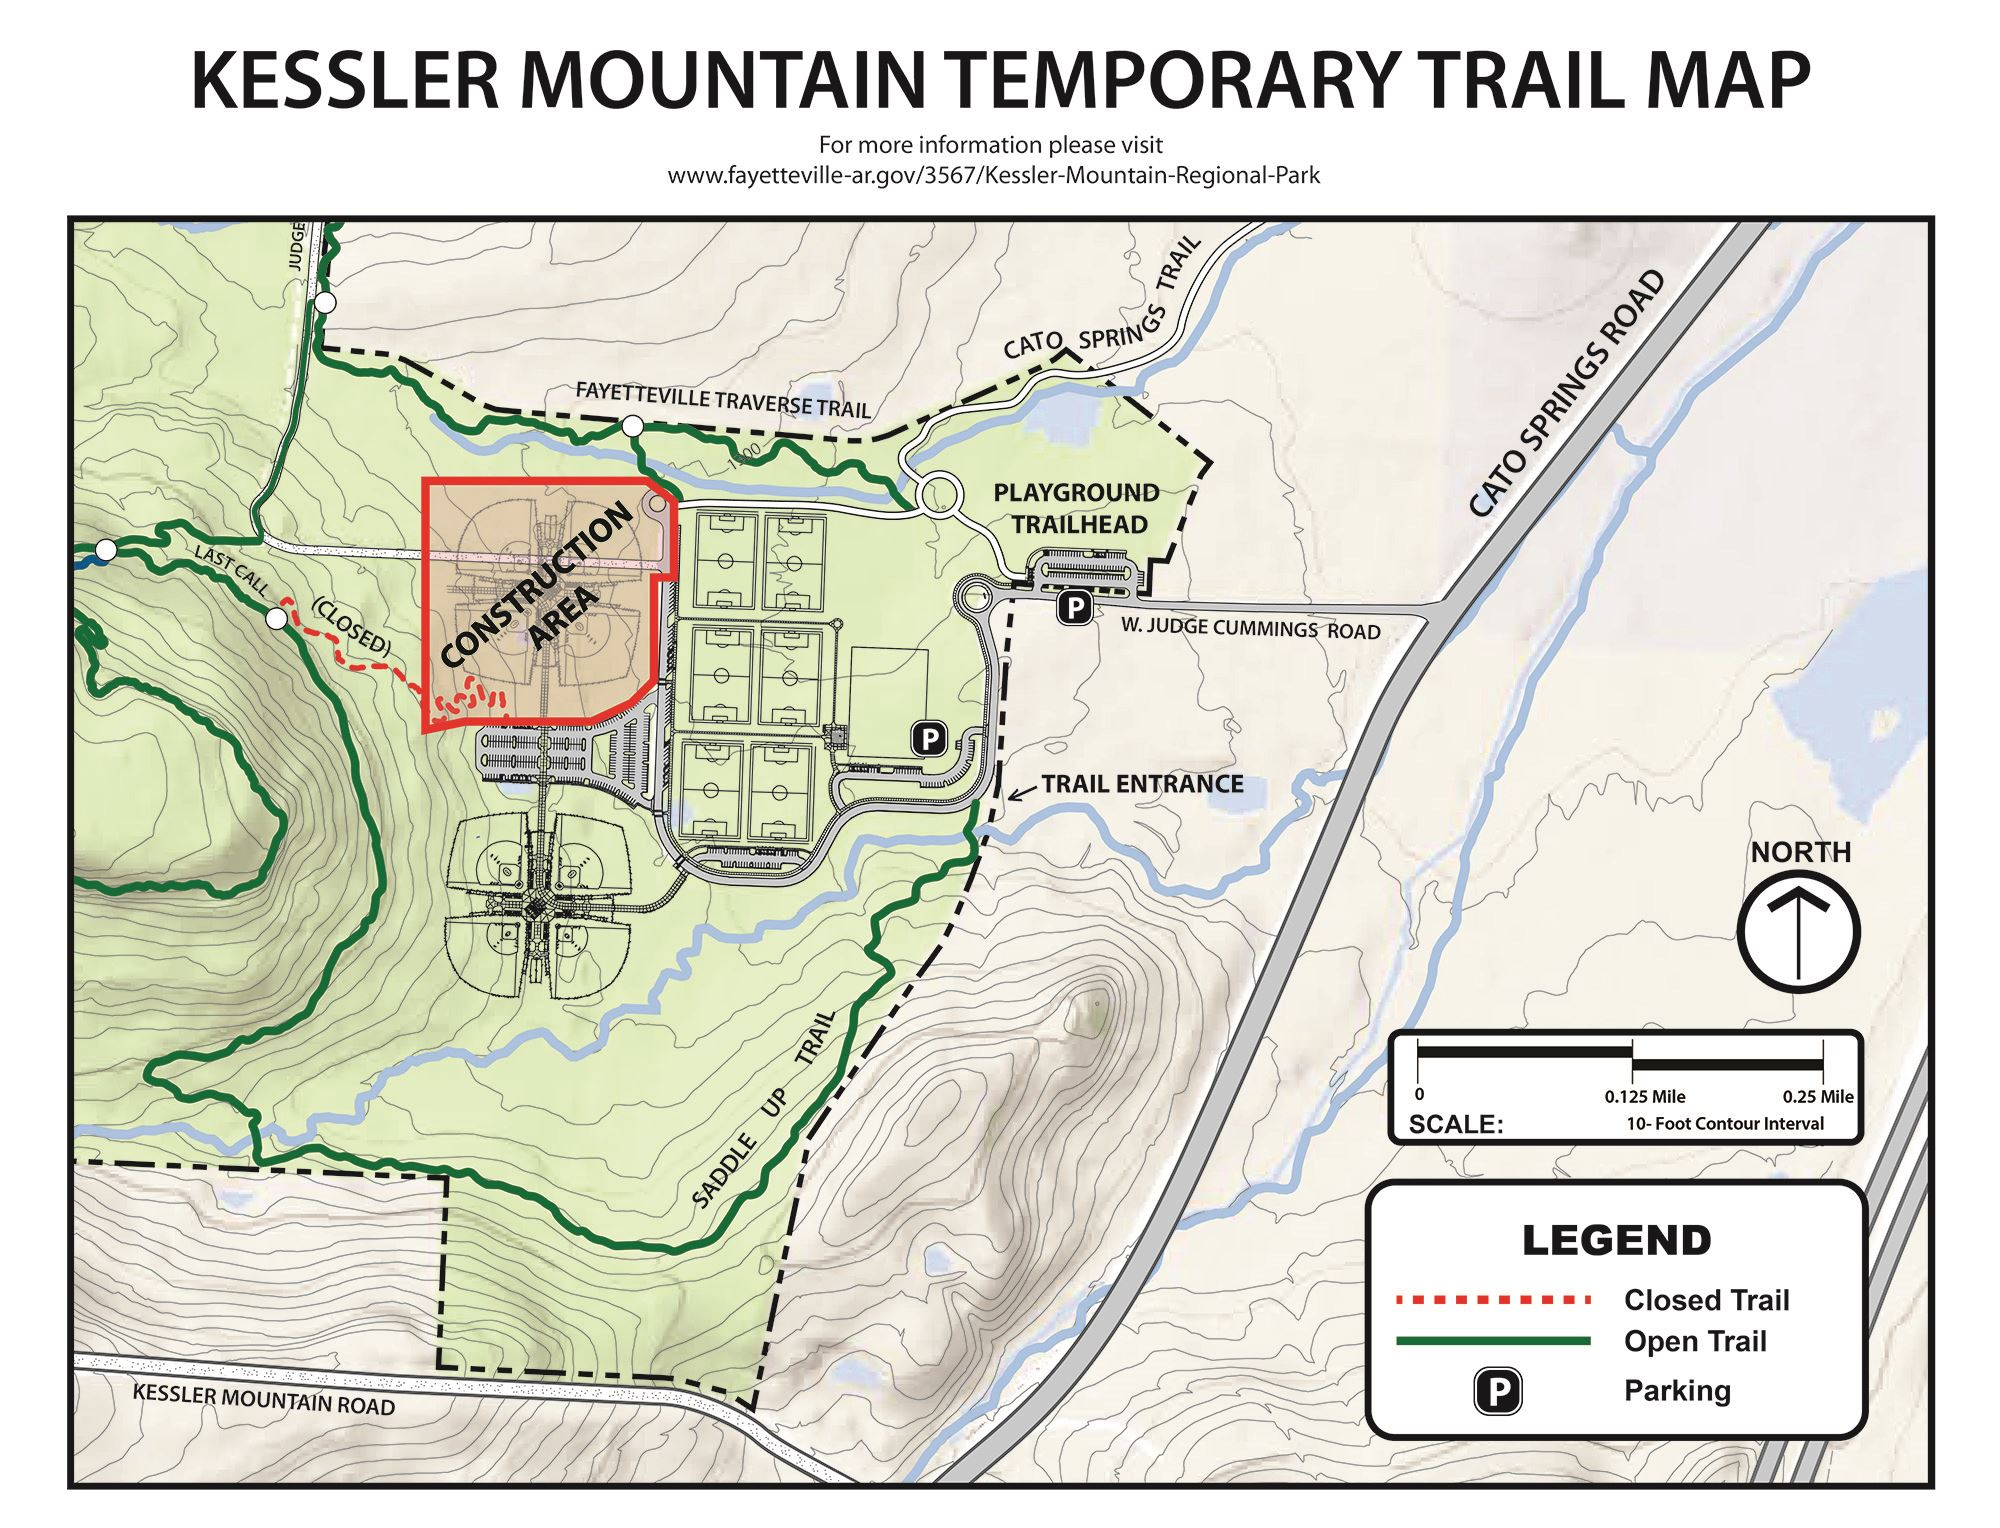 A map showing the ball field construction area and closed section of trail at Kessler Mt. Park